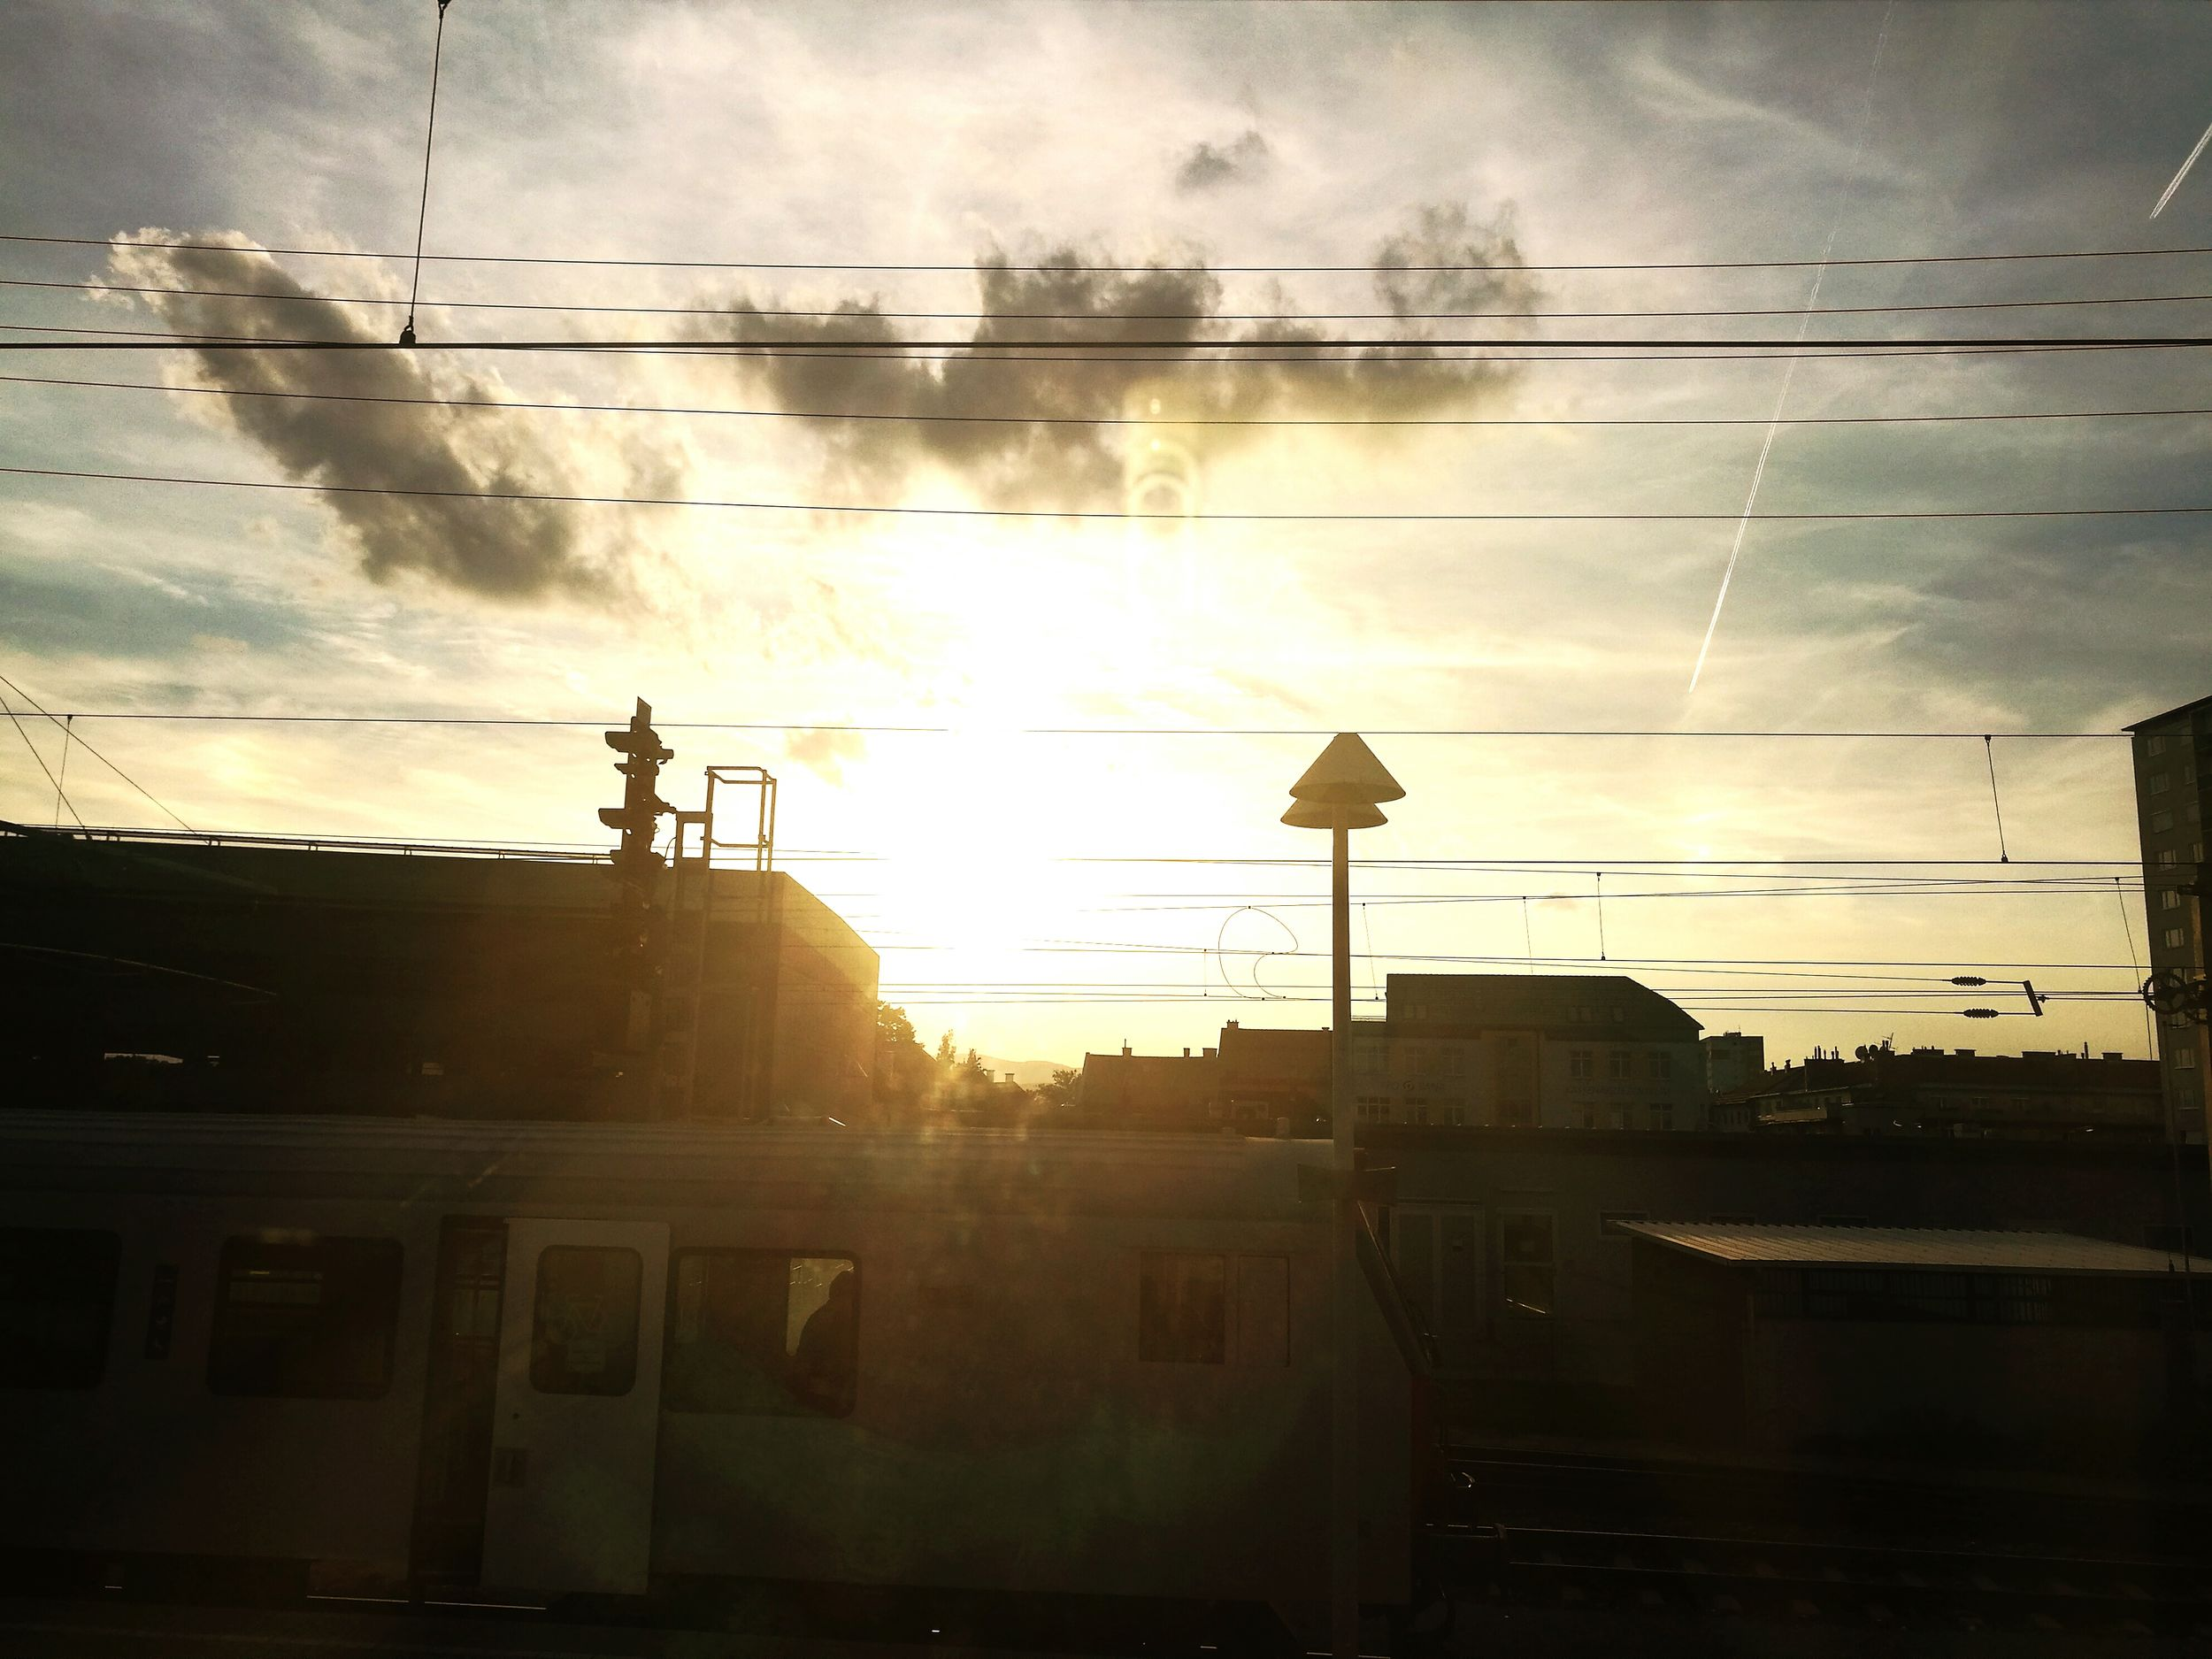 Cloud - Sky No People Outdoors Sky Sunset Cable Train Station Sunset Silhouettes Train Lines Chemtrails